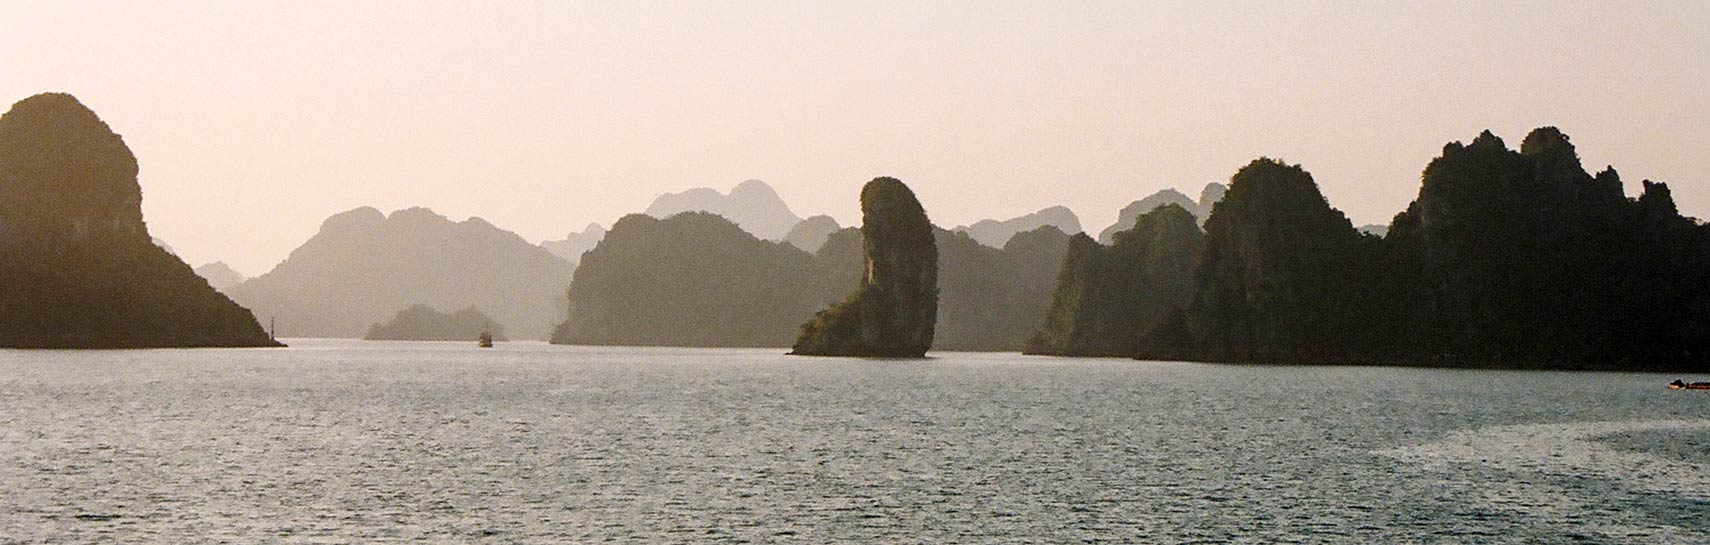 Halong Bay, Gulf of Tonkin, Vietnam